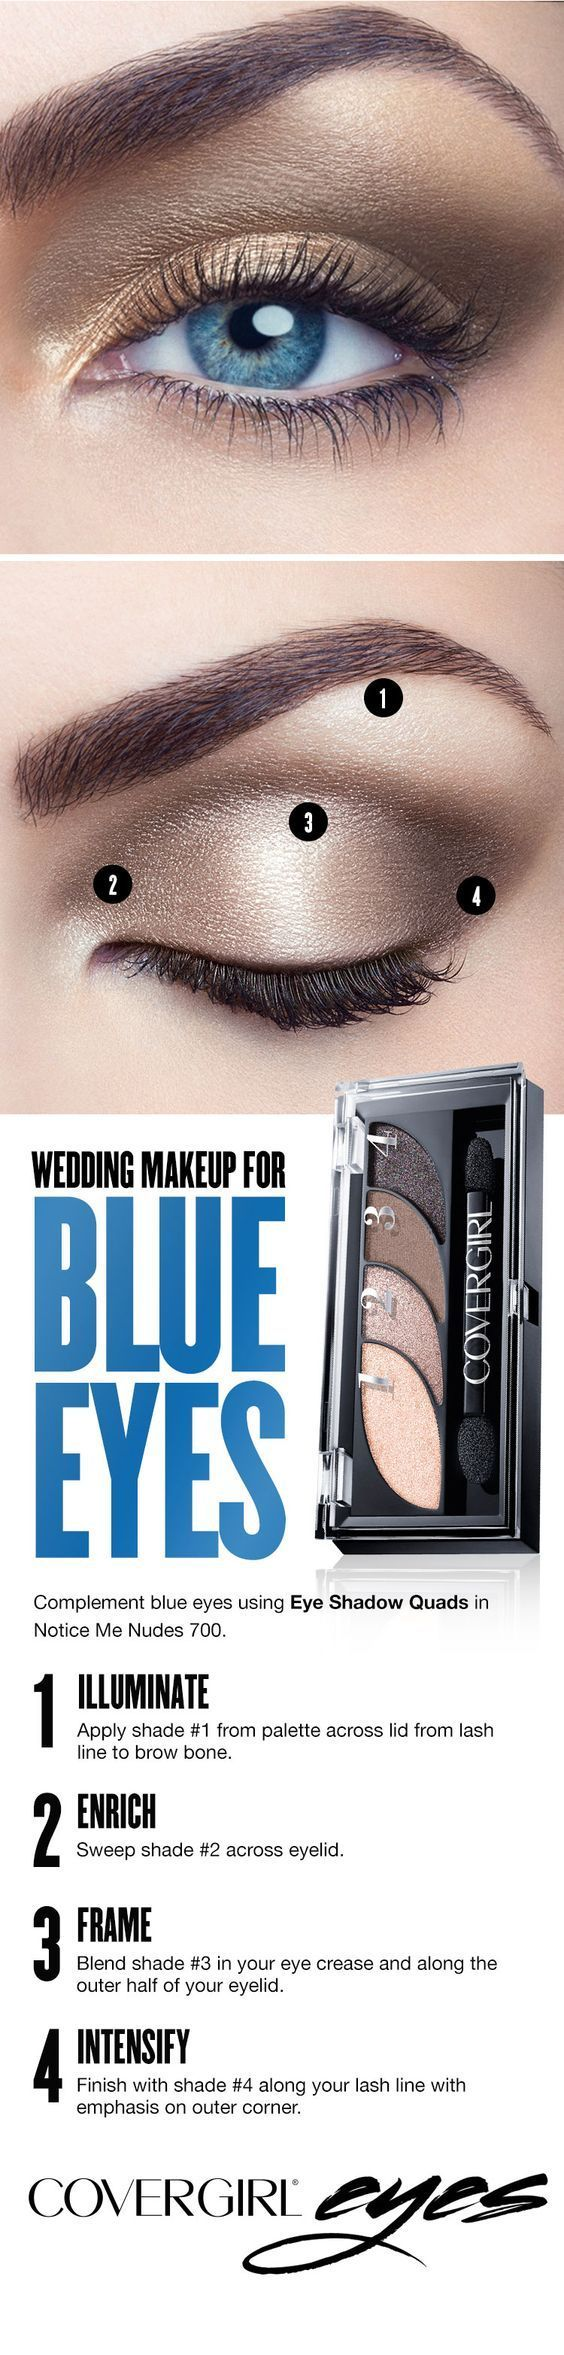 Light, neutral tones best complement blue eyes. Follow this easy step-by-step makeup guide for blue eyes on your wedding day using COVERGIRL's Eye Shadow Quad in Notice Me Nudes 700. Step 1: Illuminate. Apply shade 1 from palette across lid from lash line to brow bone. Step 2: Enrich. Sweep shade 2 across eyelid. Step 3: Frame. Blend shade 3 in your eye crease and along the outer half of your eyelid. Step 4: Intensify. Finish with shade 4 along your lash line with emphasis on outer corner.: